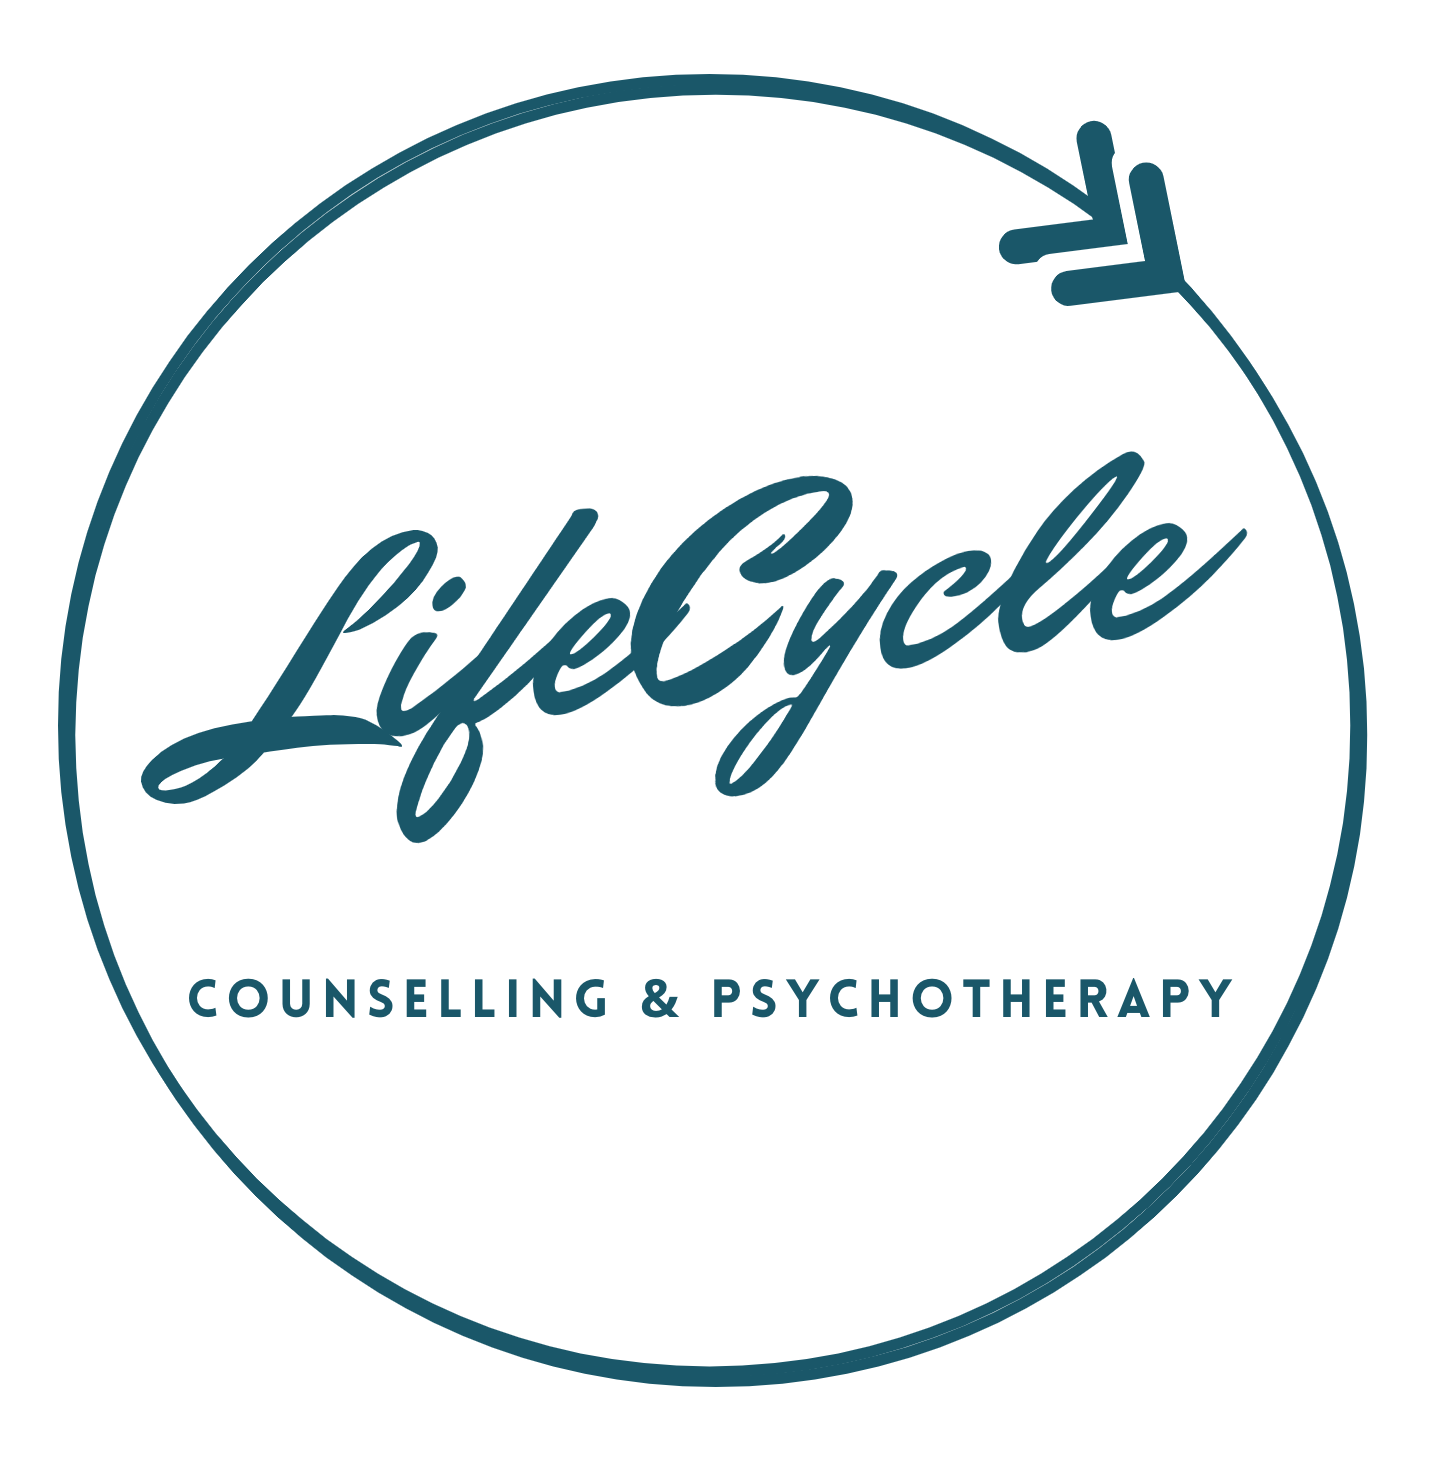 LifeCycle Counselling